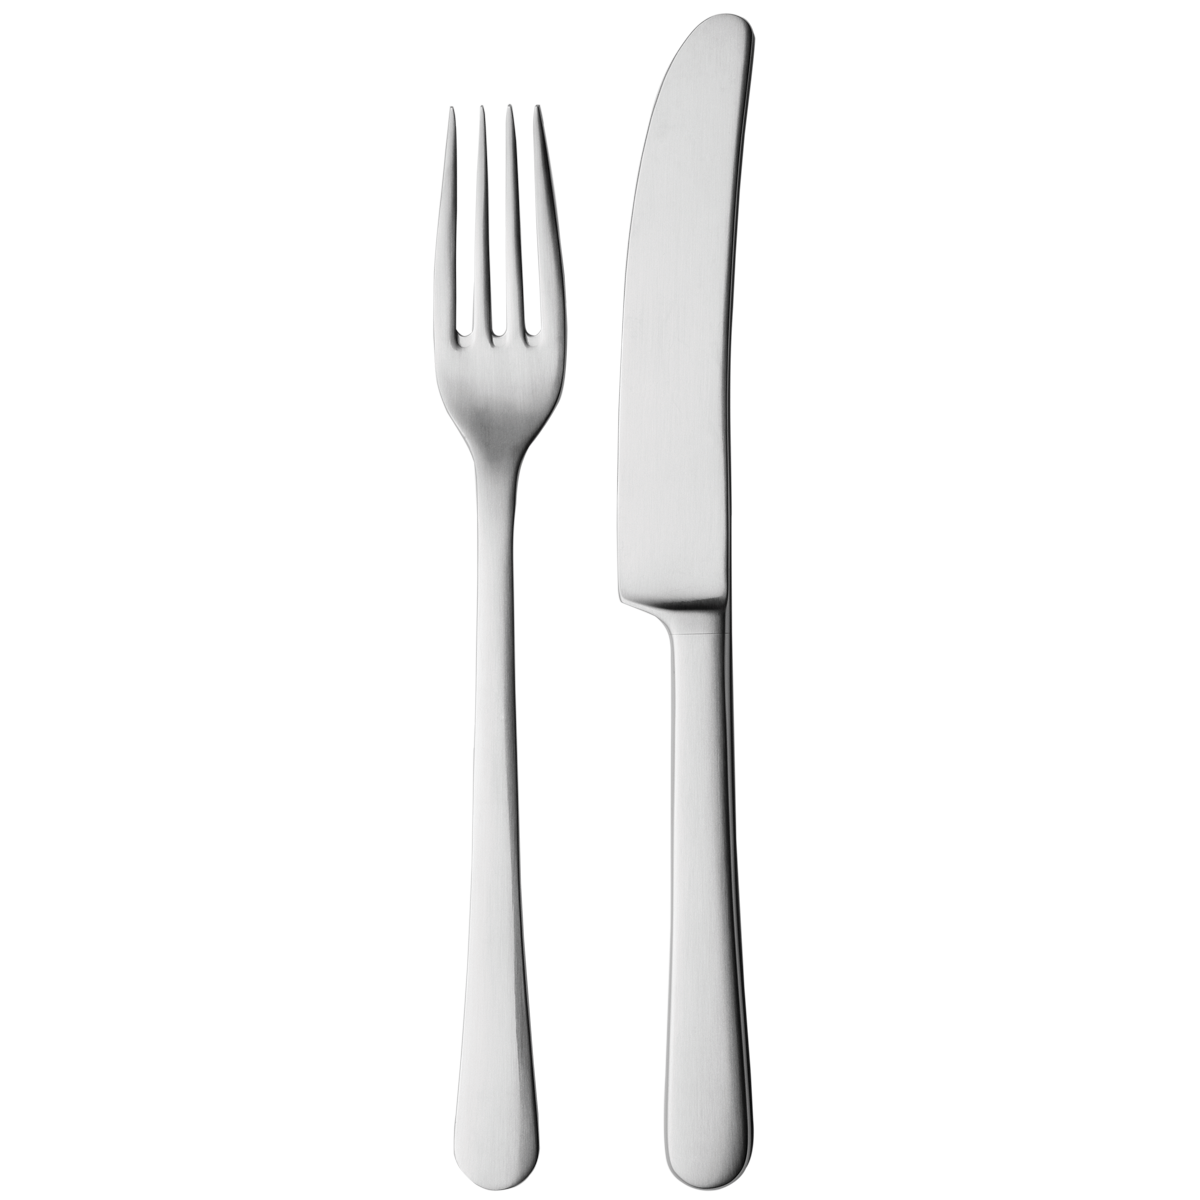 Fork And Knife Images - Clipart Library - Fork HD PNG